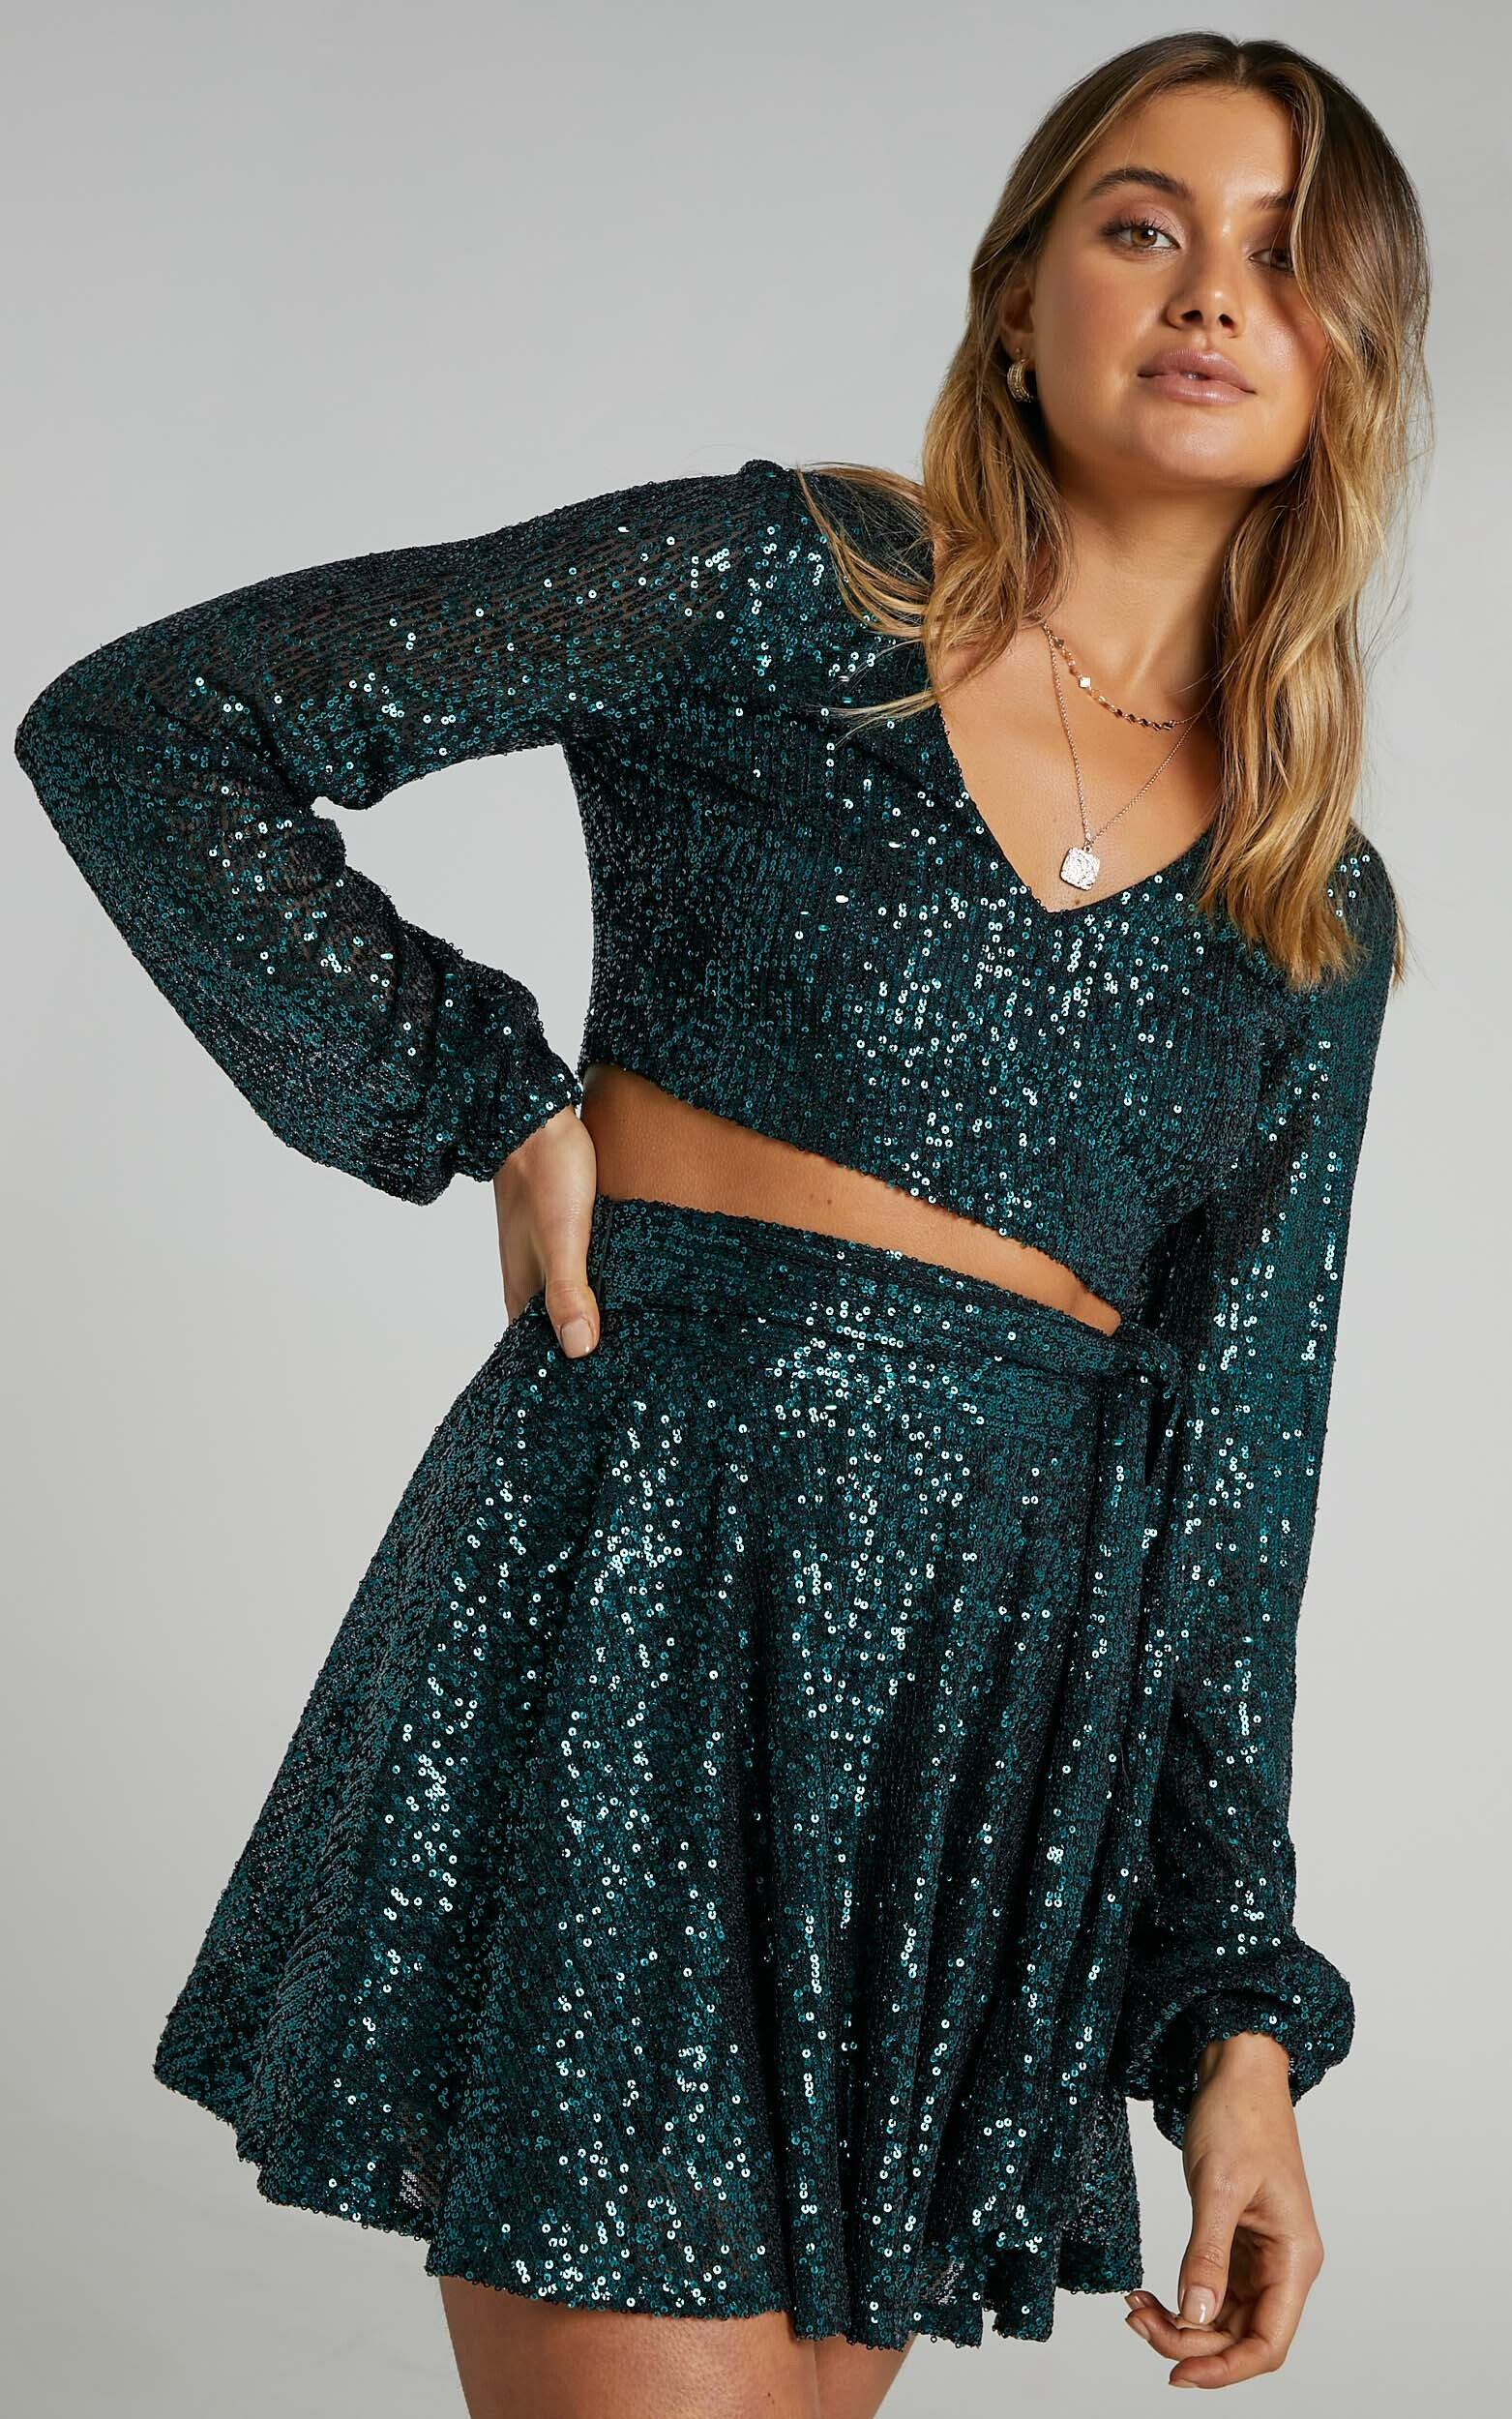 Cami Longsleeve Two Piece Set in Emerald Sequin - 06, GRN1, hi-res image number null